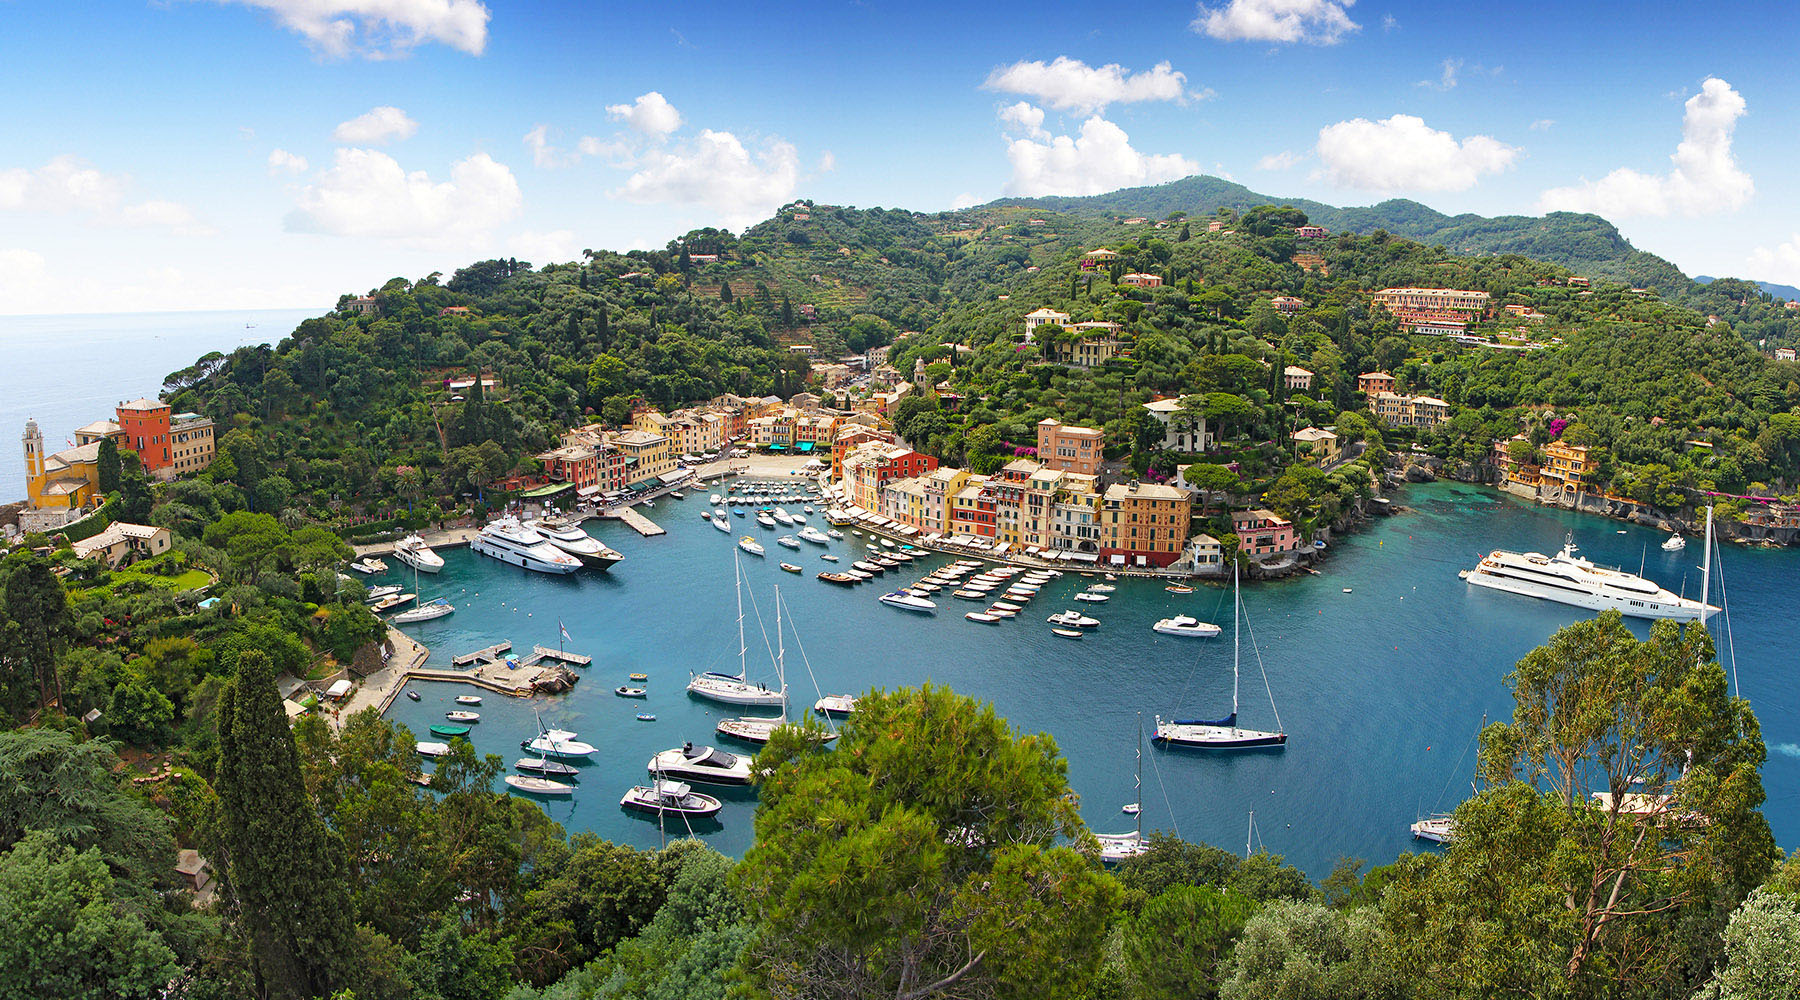 7 NIGHT ITALY, FRANCE & SPAIN VOYAGE